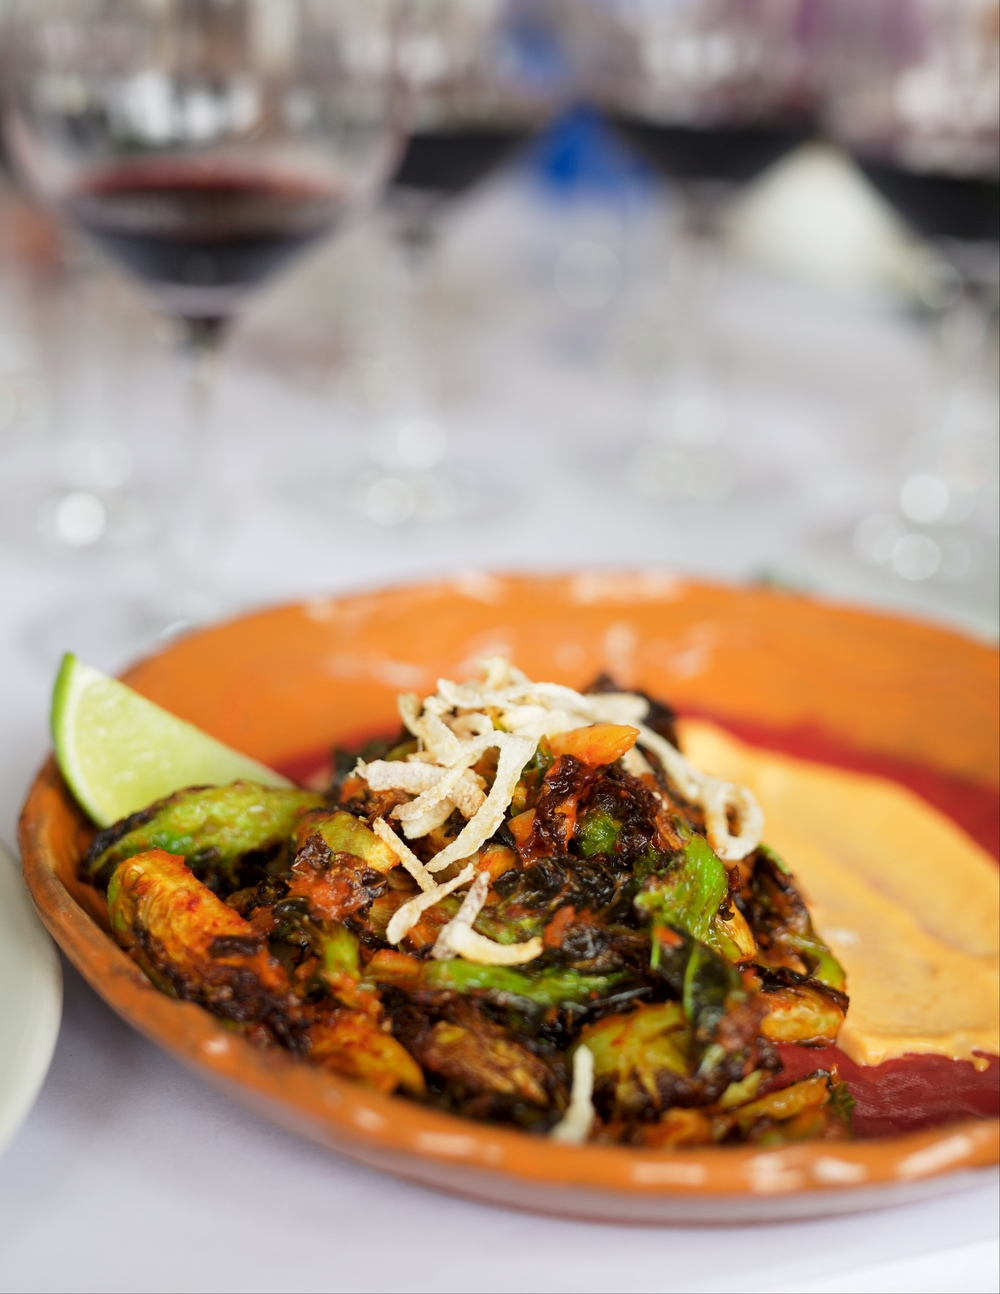 Cindy does Brussels sprouts like no other! The slightly spicy Asian flare paired wonderfully with our Sauvignon Blanc.